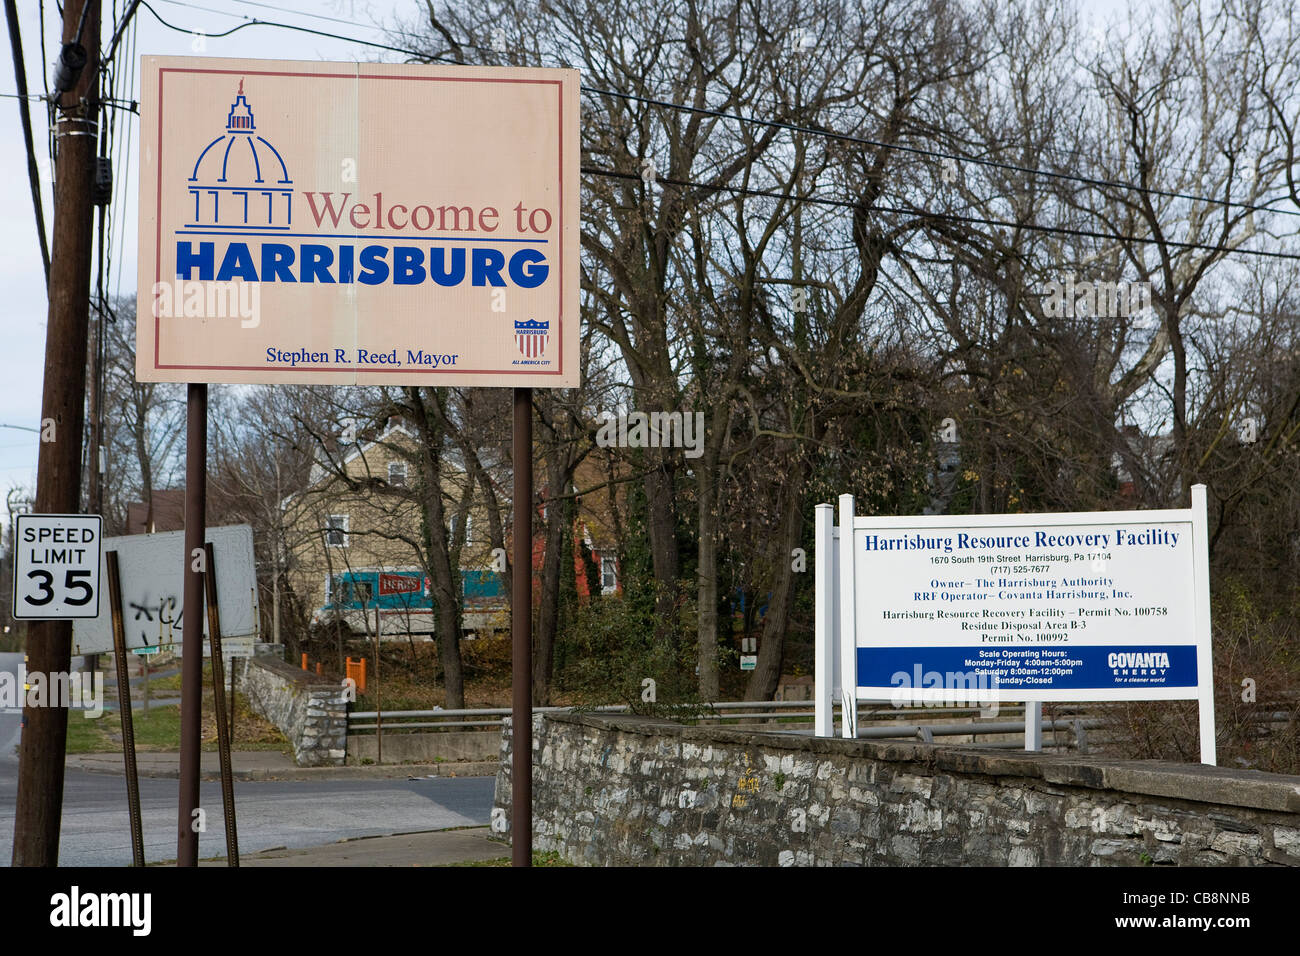 A view outside of the Harrisburg, Pennsylvania trash incinerator.  - Stock Image